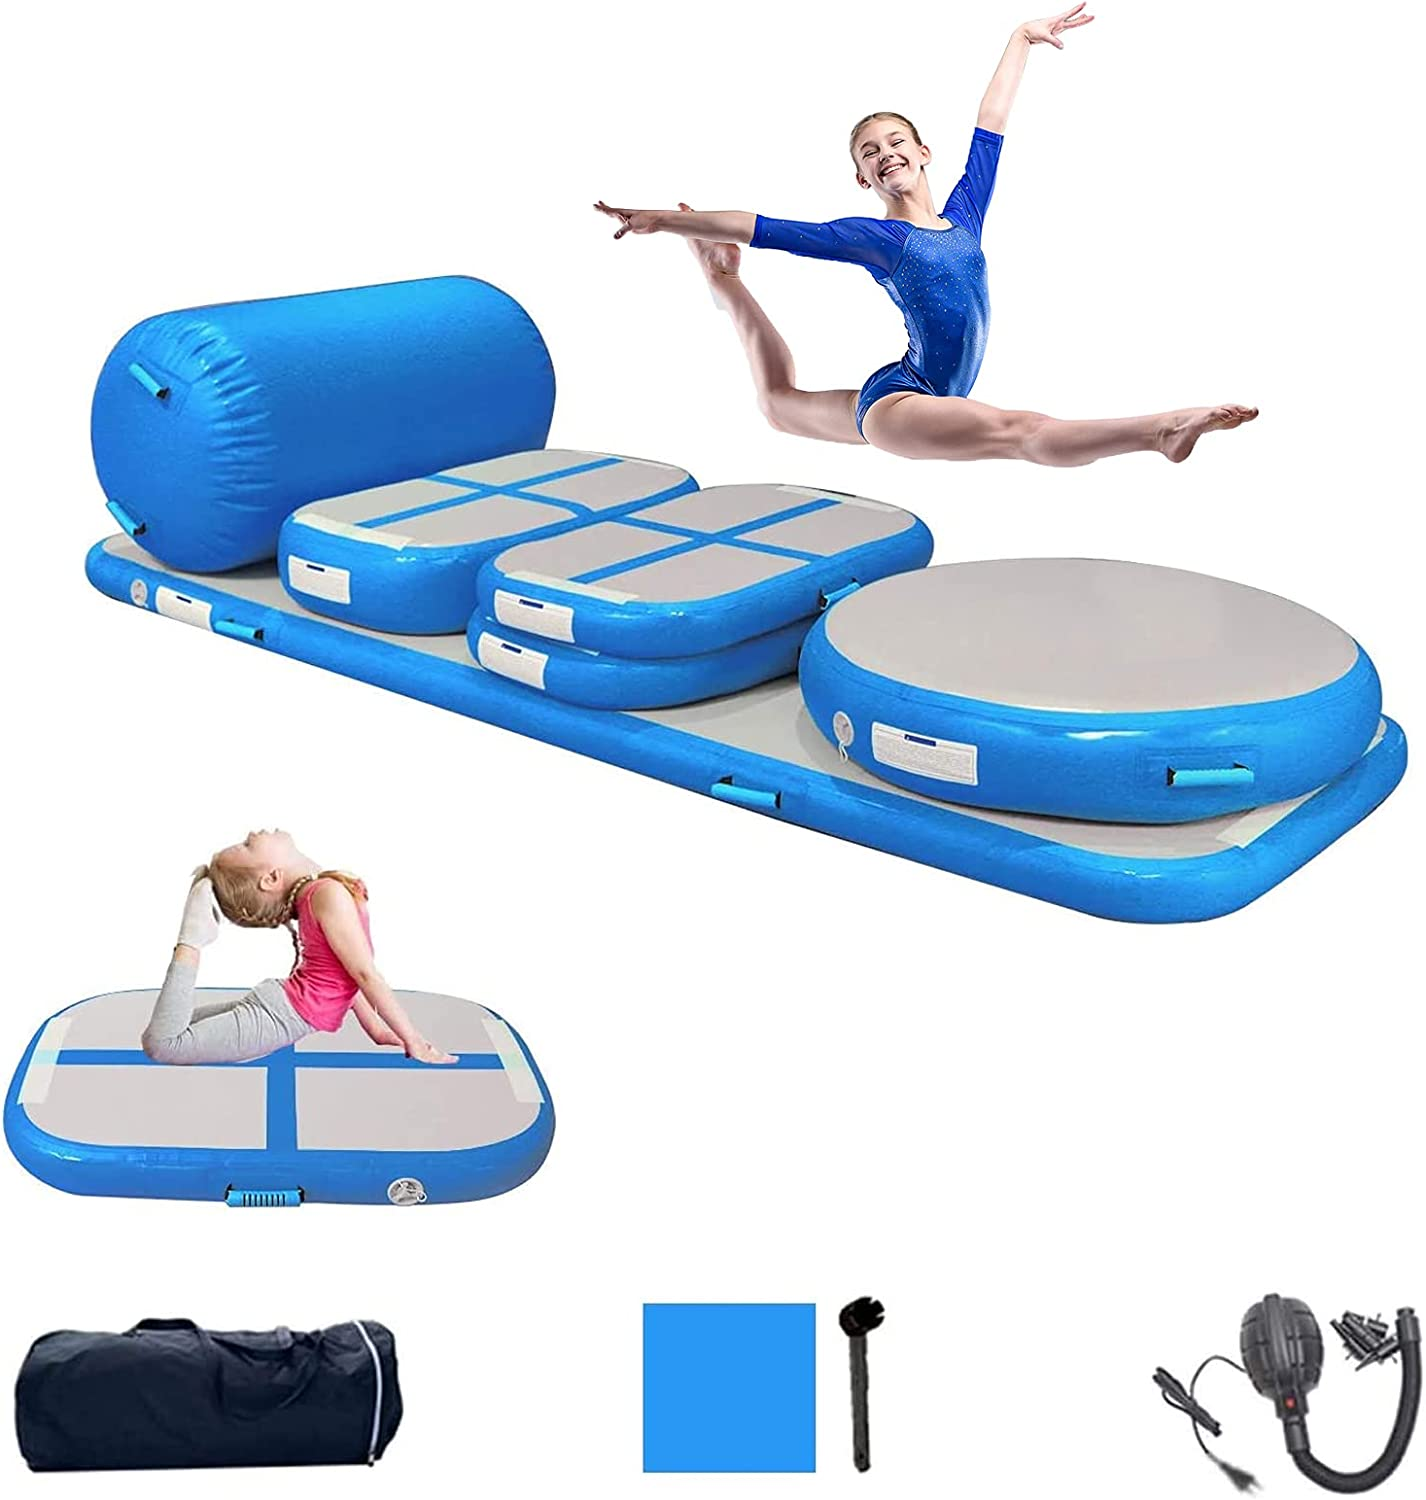 PPXIA Gymnastics Mat Inflatable Tumbling Mat 4 inches Thickness Air Floor Tumble Track Air Track Set with Pump for Training Cheerleading Home Use Beach Park and Water Use